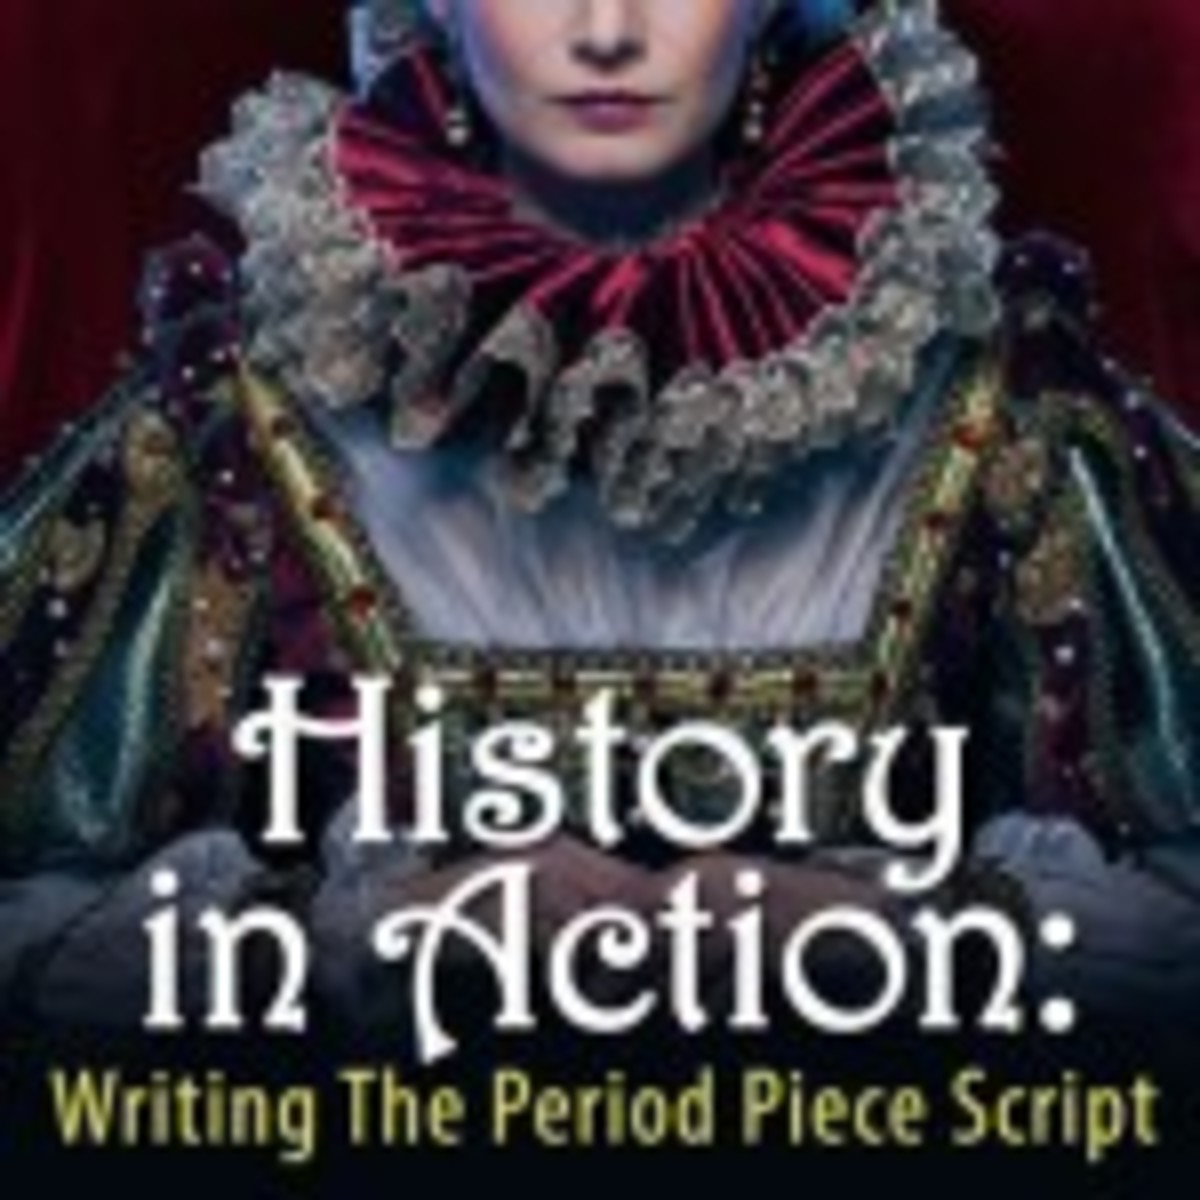 ws_historyinaction-500_medium